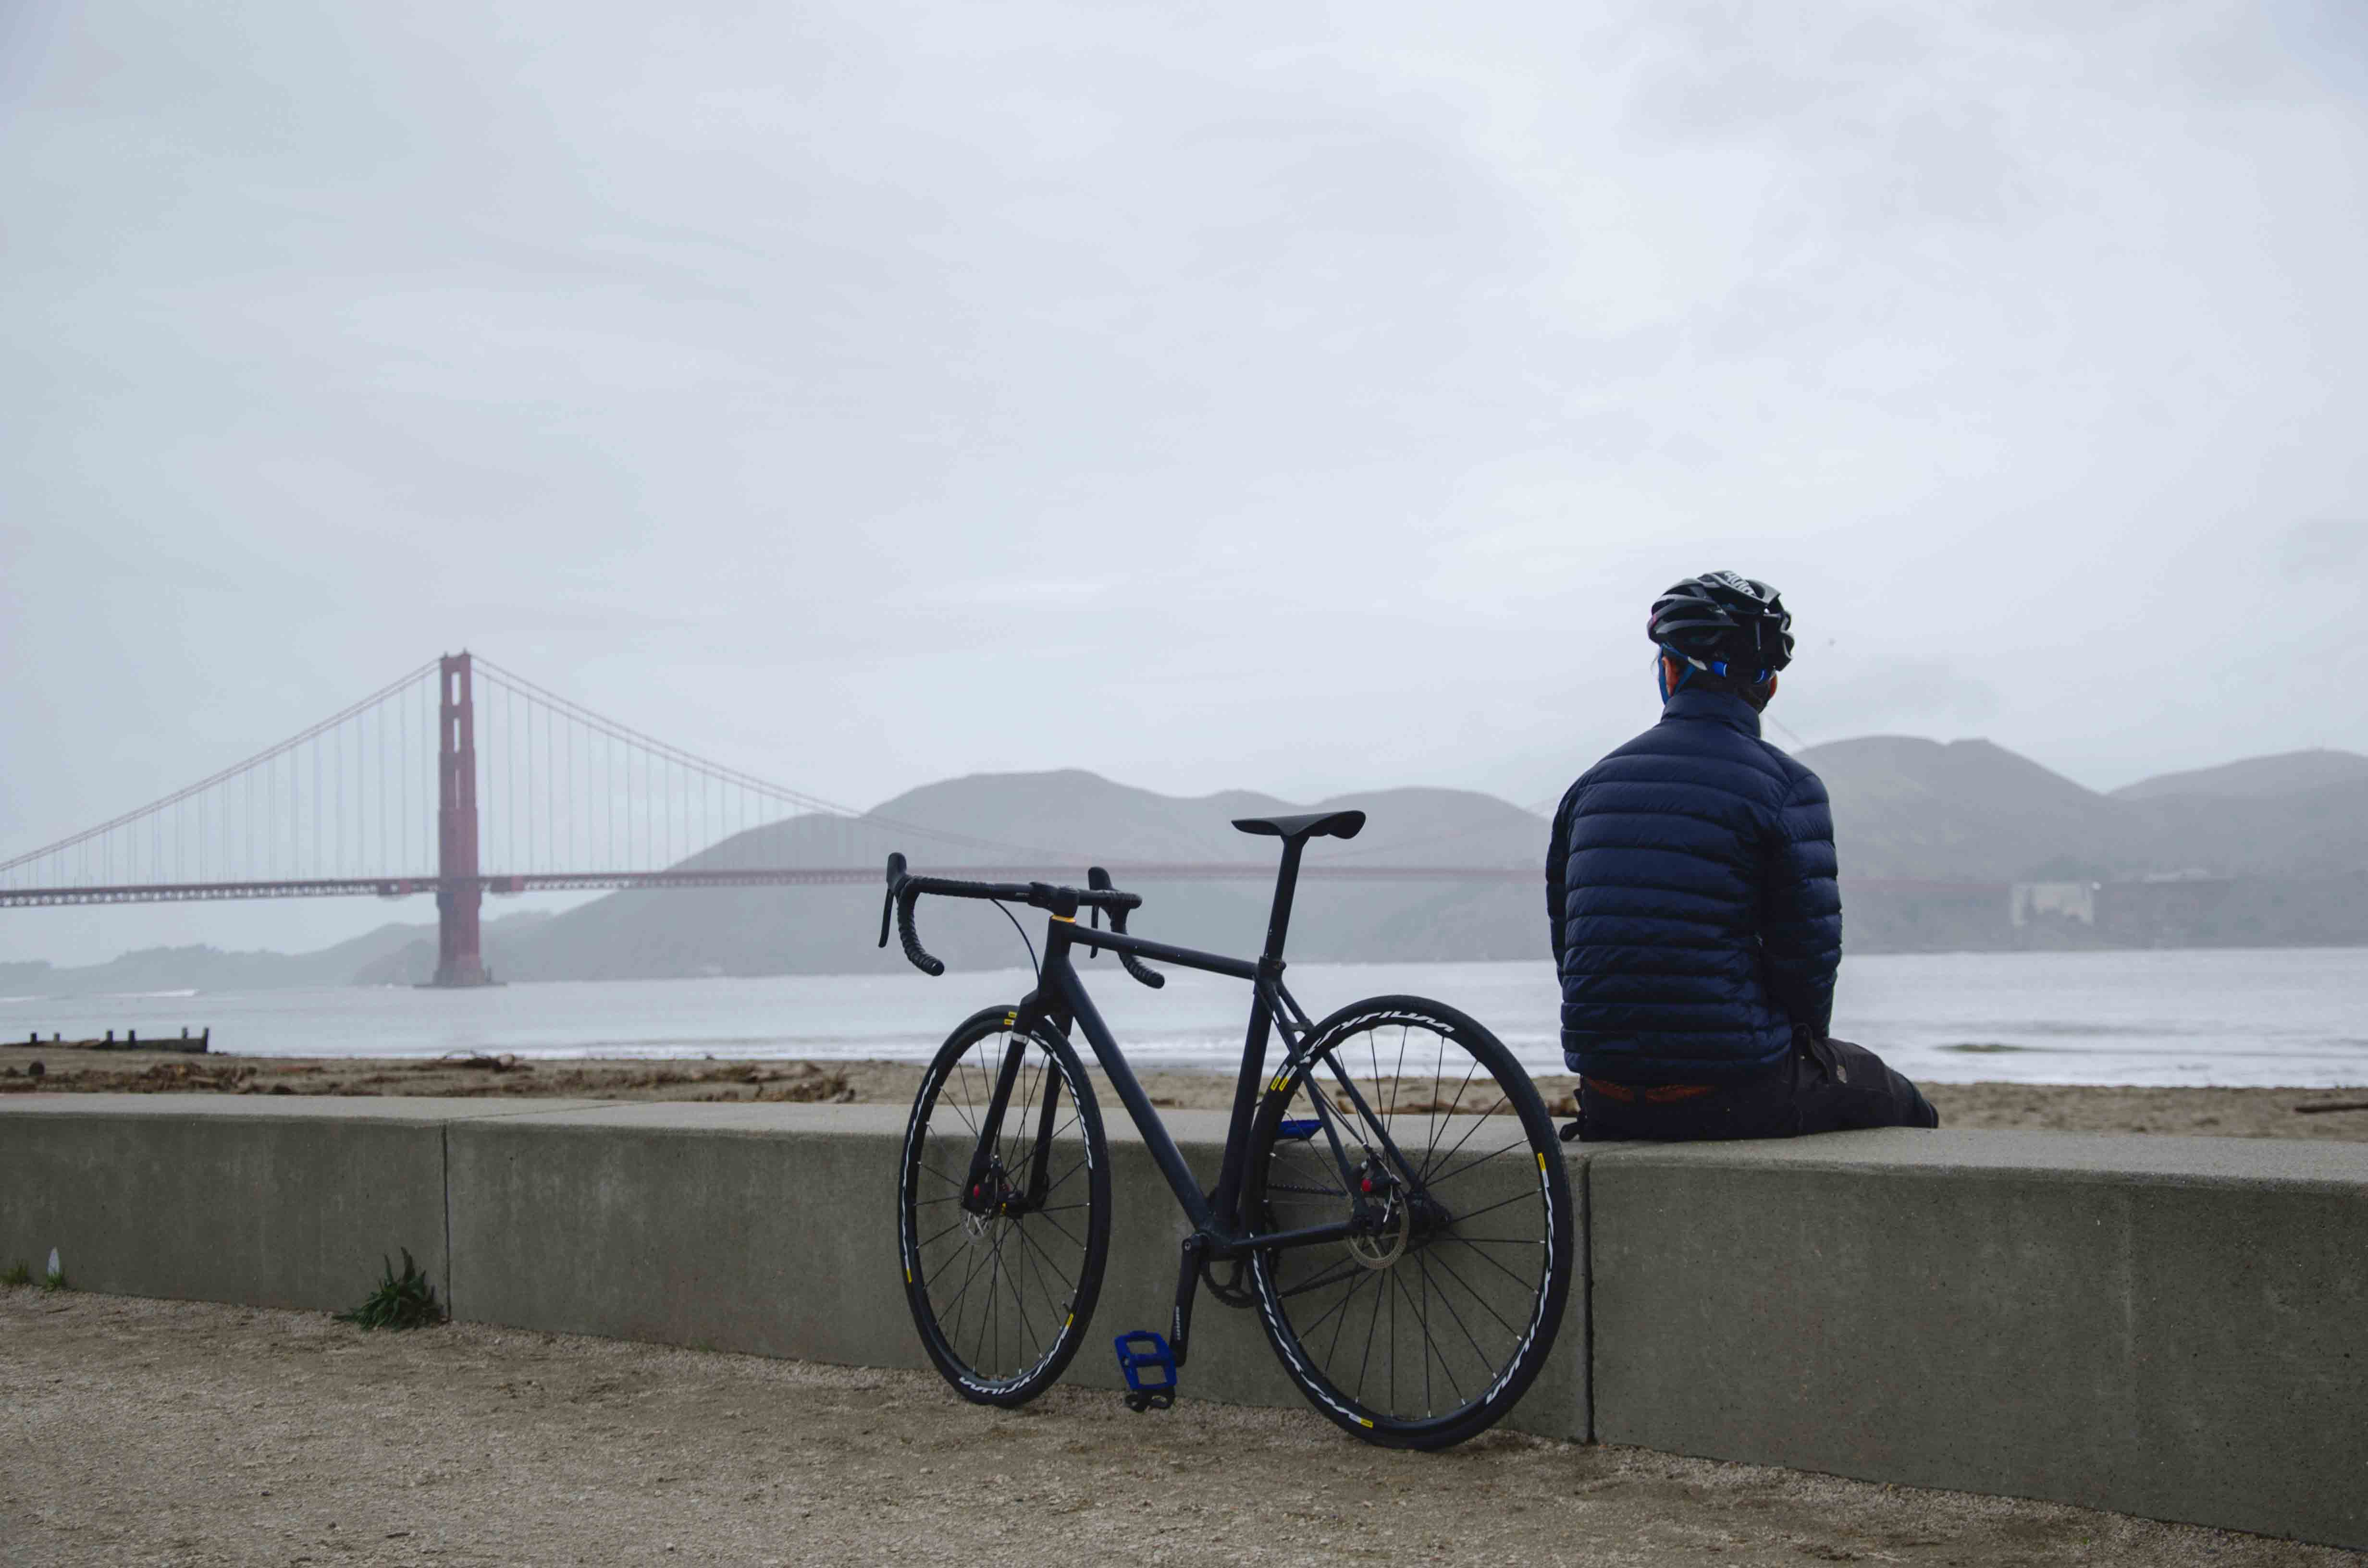 Sculpteo 3D Printed Bike is Going on the Road Across the US!